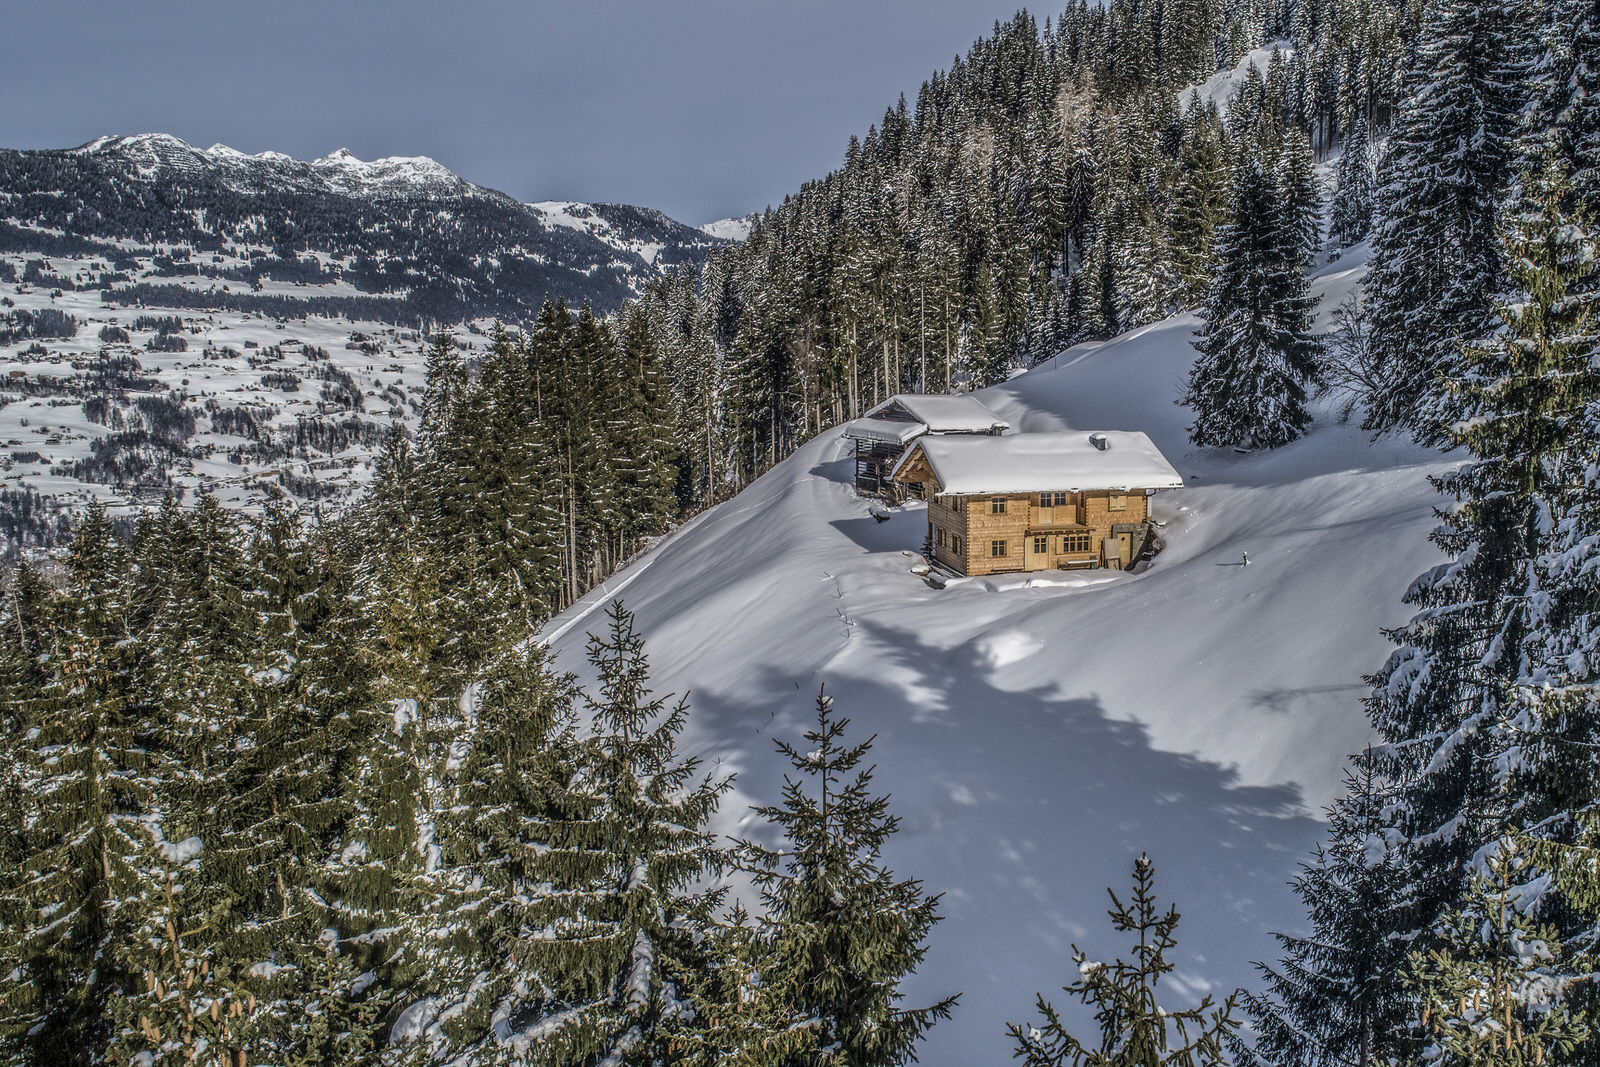 Mountain lodge Manuaf Gampadelstal in the Montafon - winter